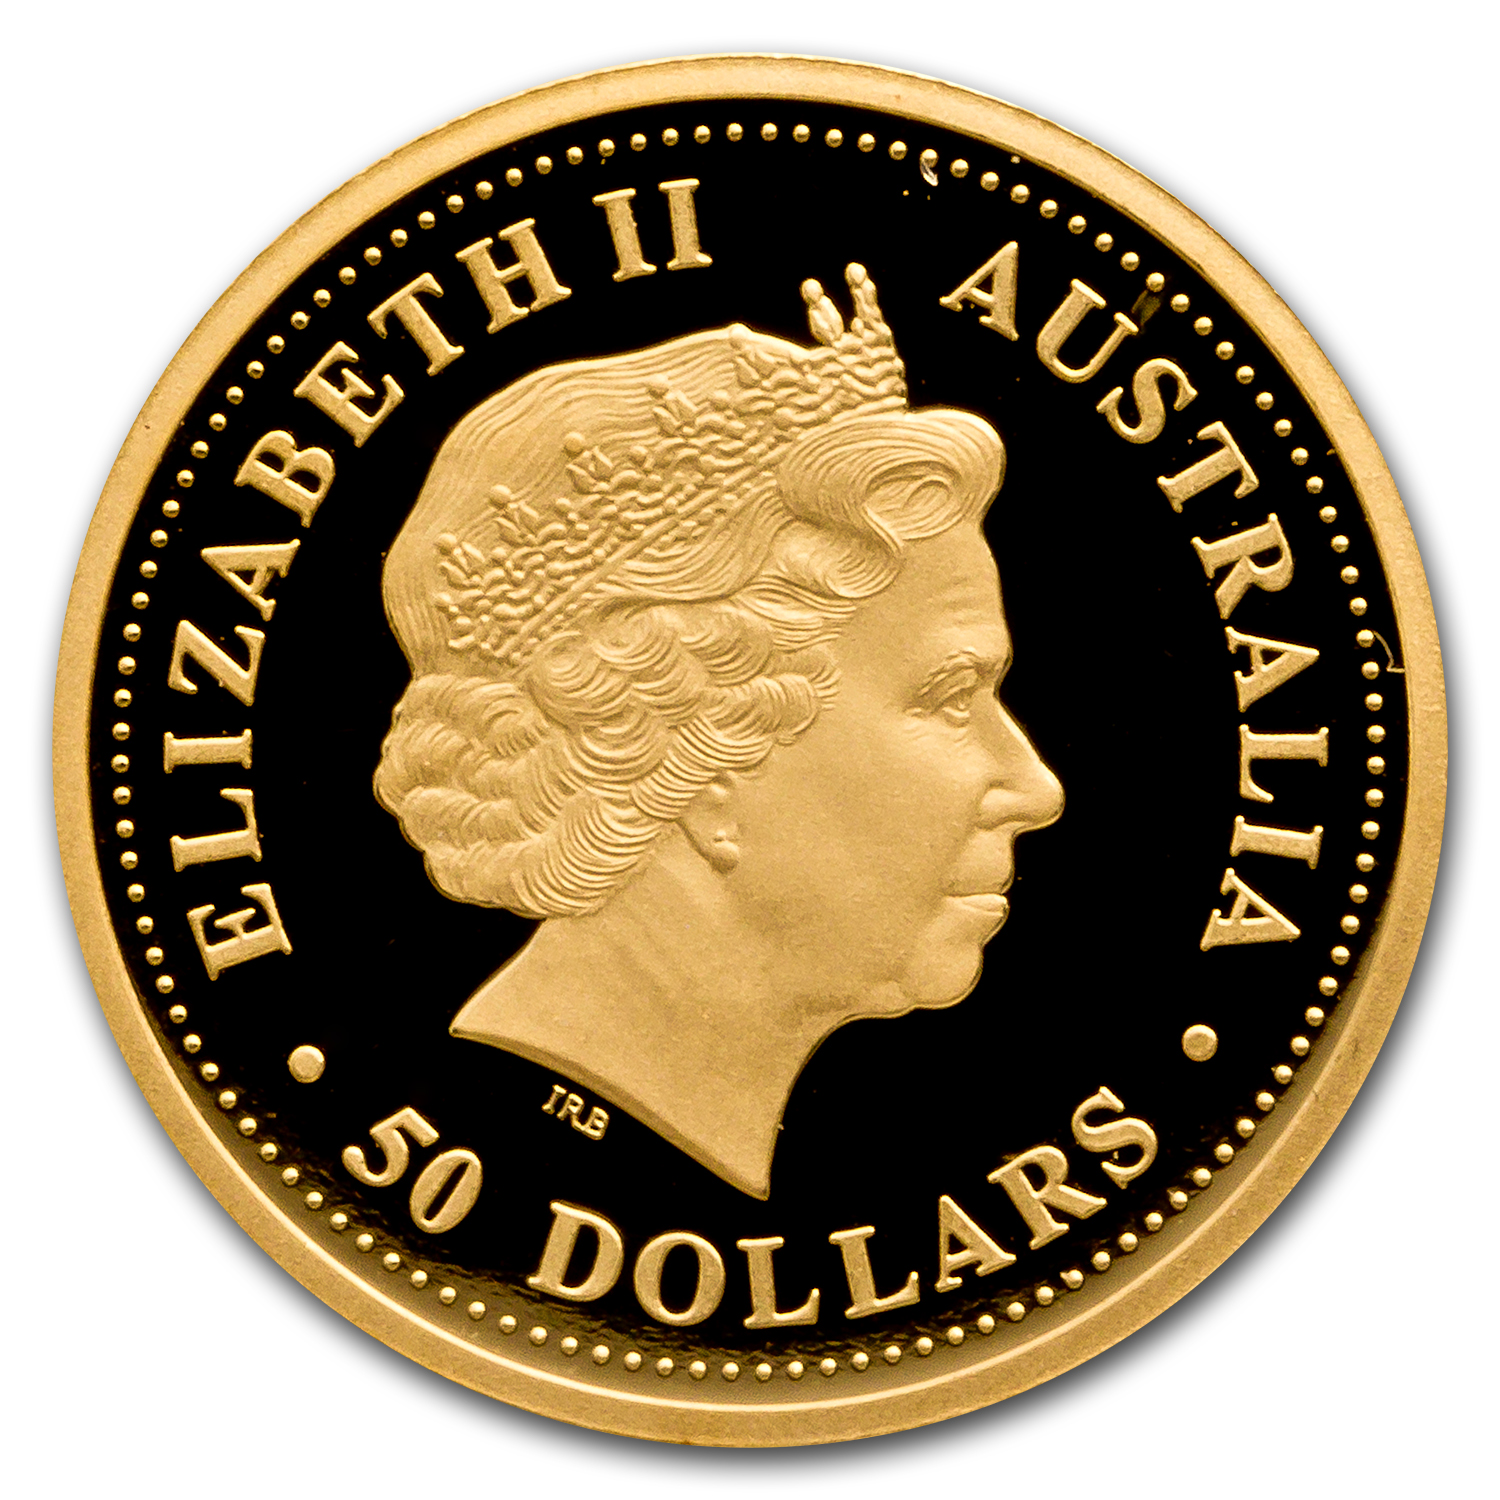 1999 Australia 1/2 oz Proof Gold Nugget